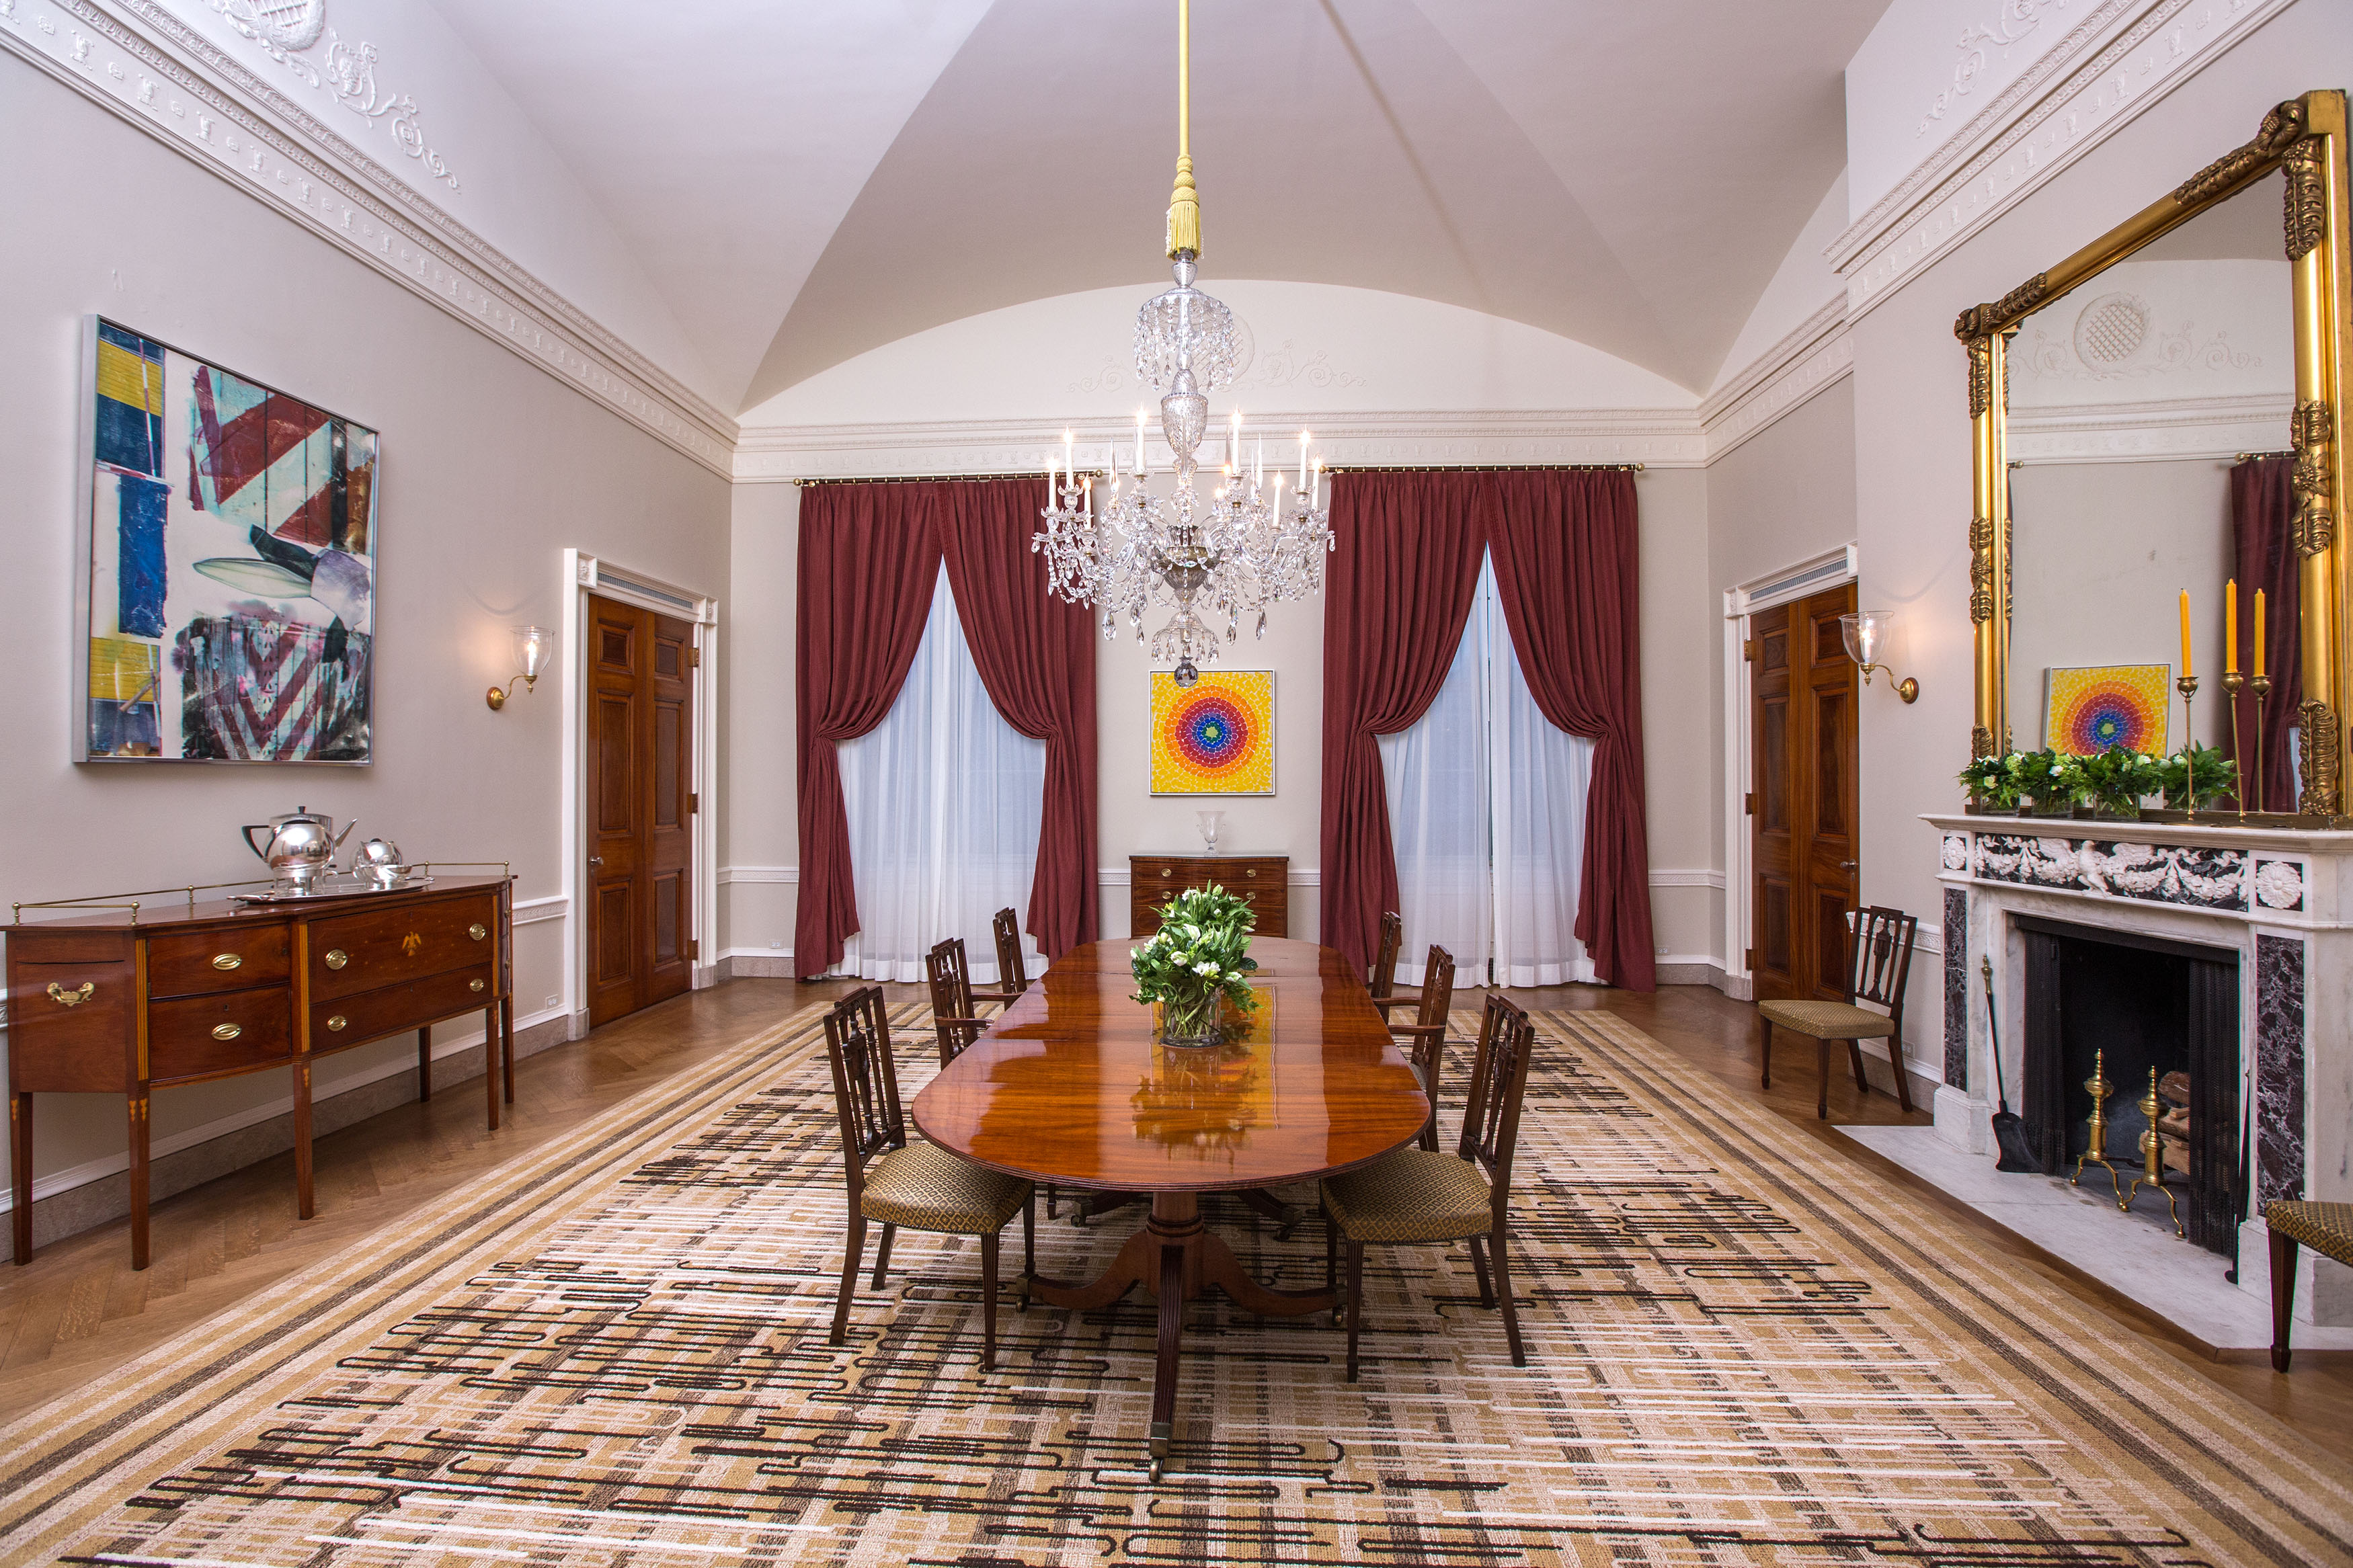 Merveilleux The Old Family Dining Room Of The White House, Feb. 9, 2015.